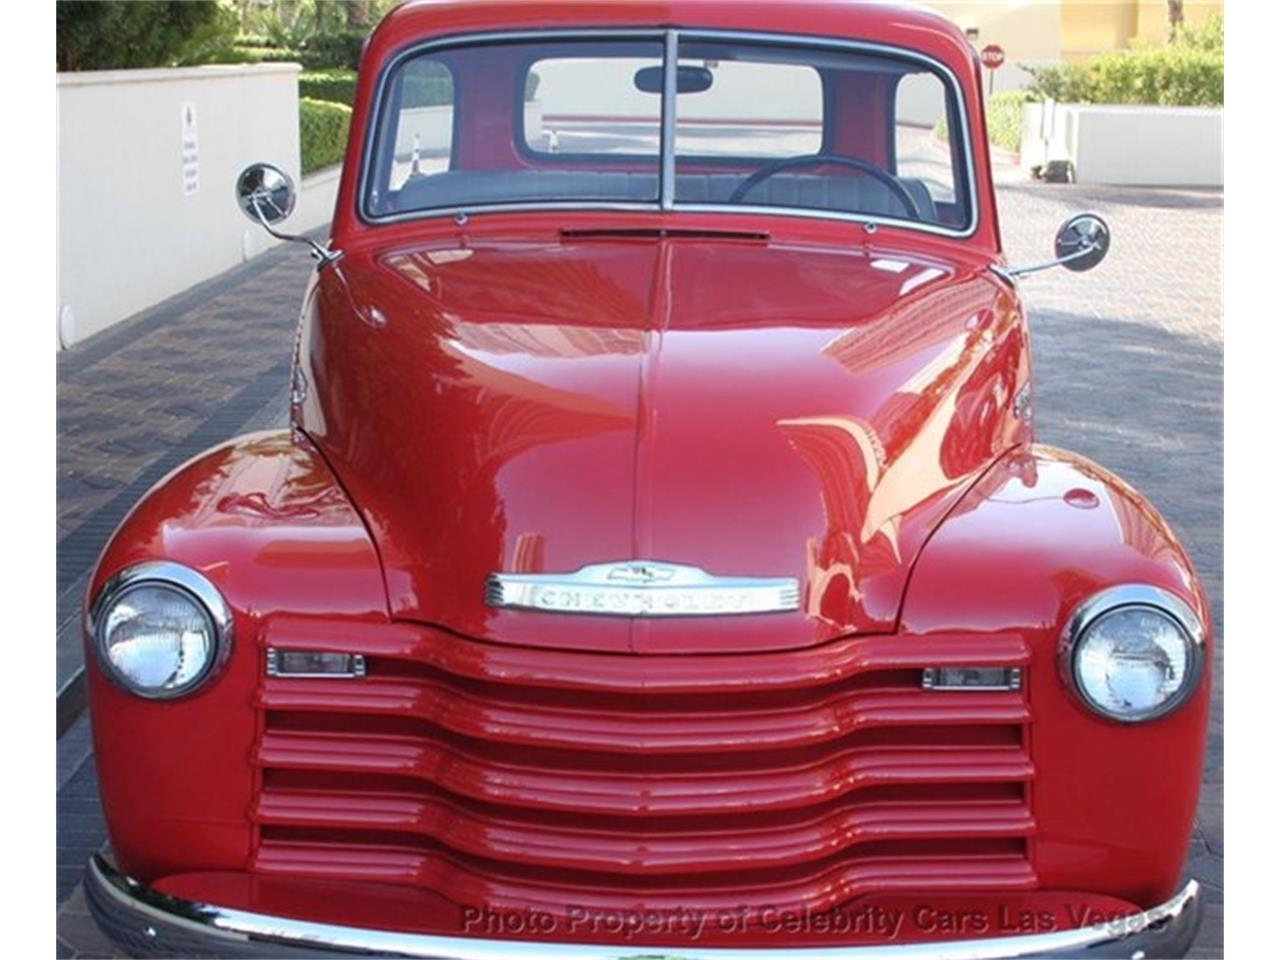 Large Picture of 1950 Chevrolet 3100 located in Nevada Offered by Celebrity Cars Las Vegas - CZHB